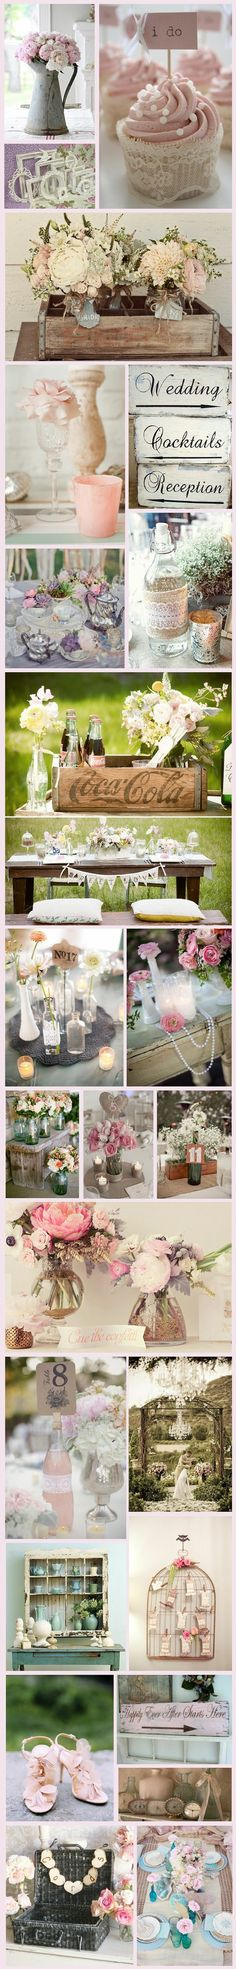 Vintage/Shabby chic wedding